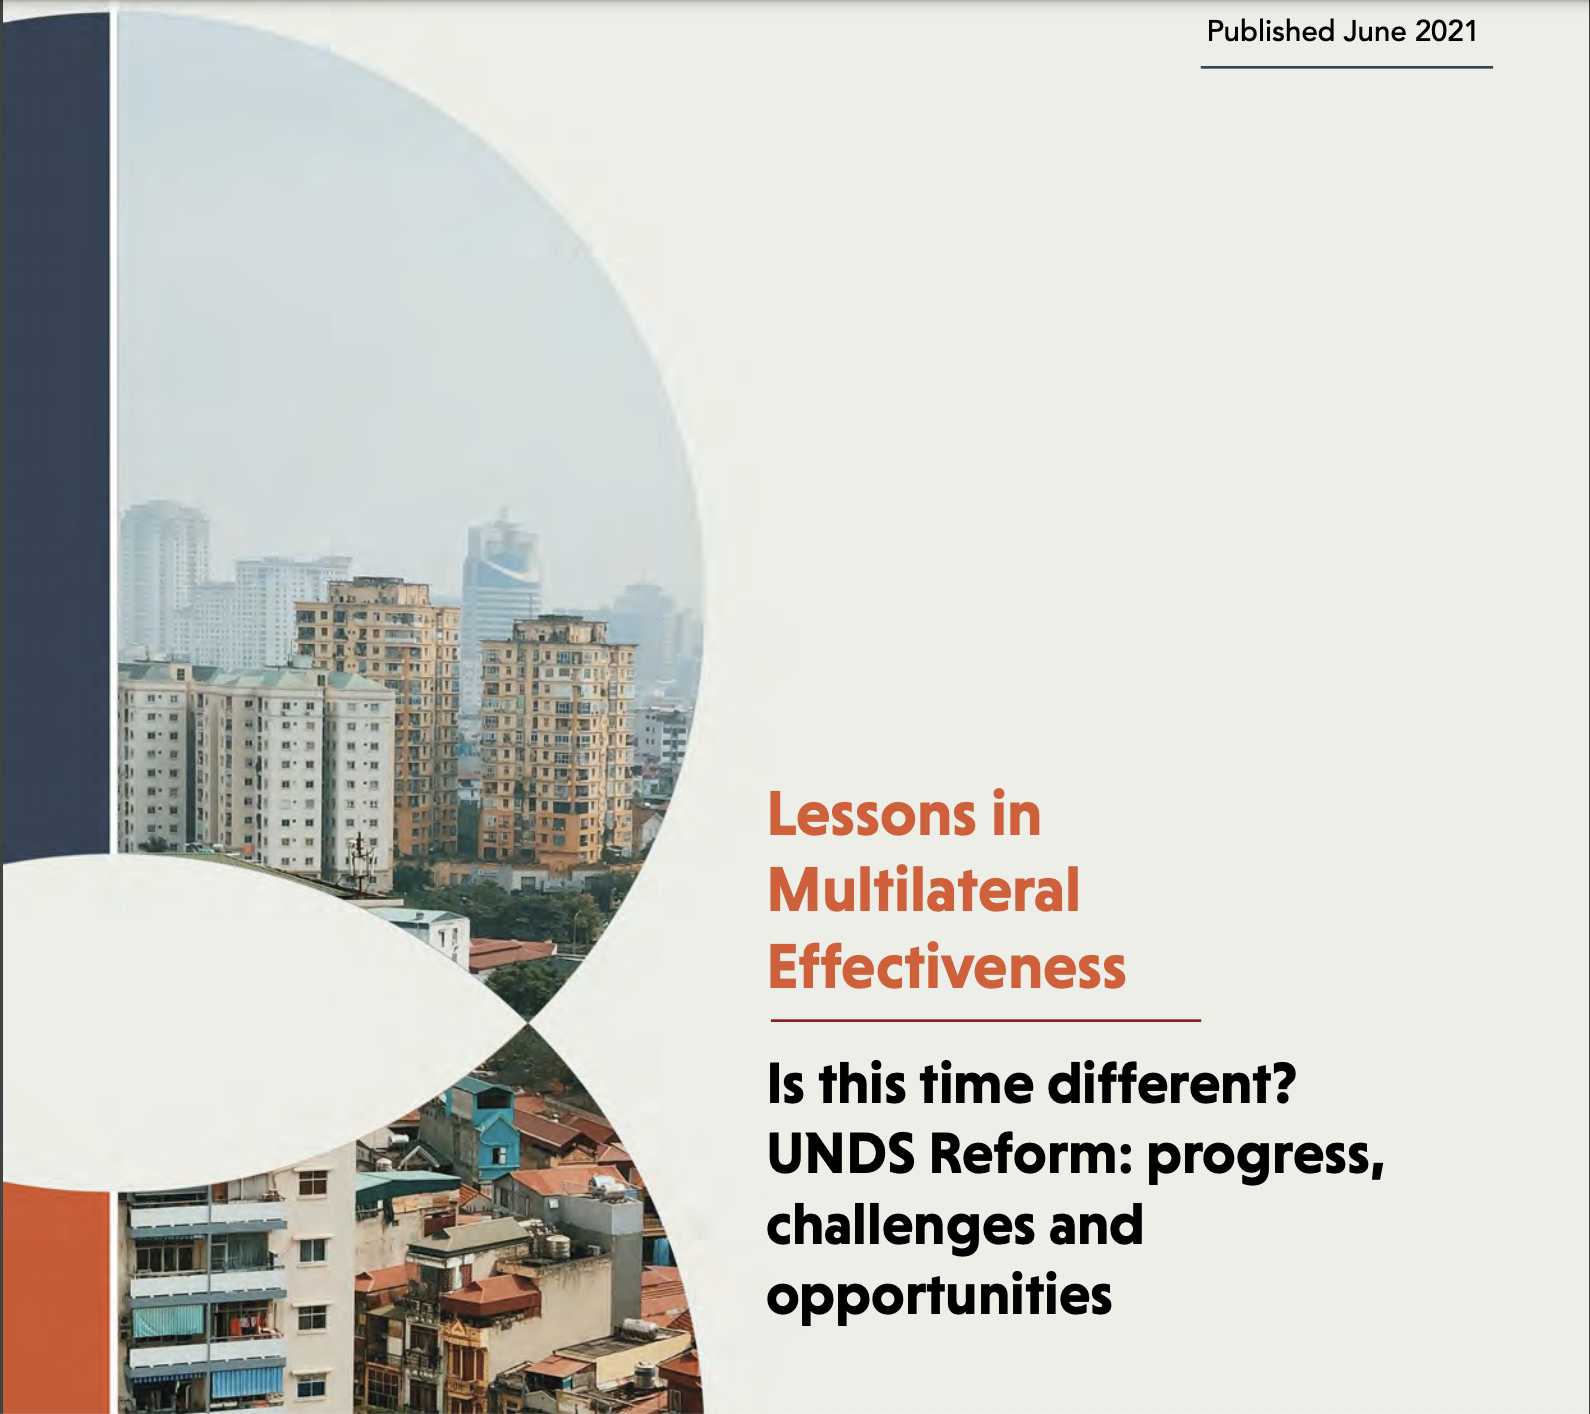 Lessons in Multilateral Effectiveness